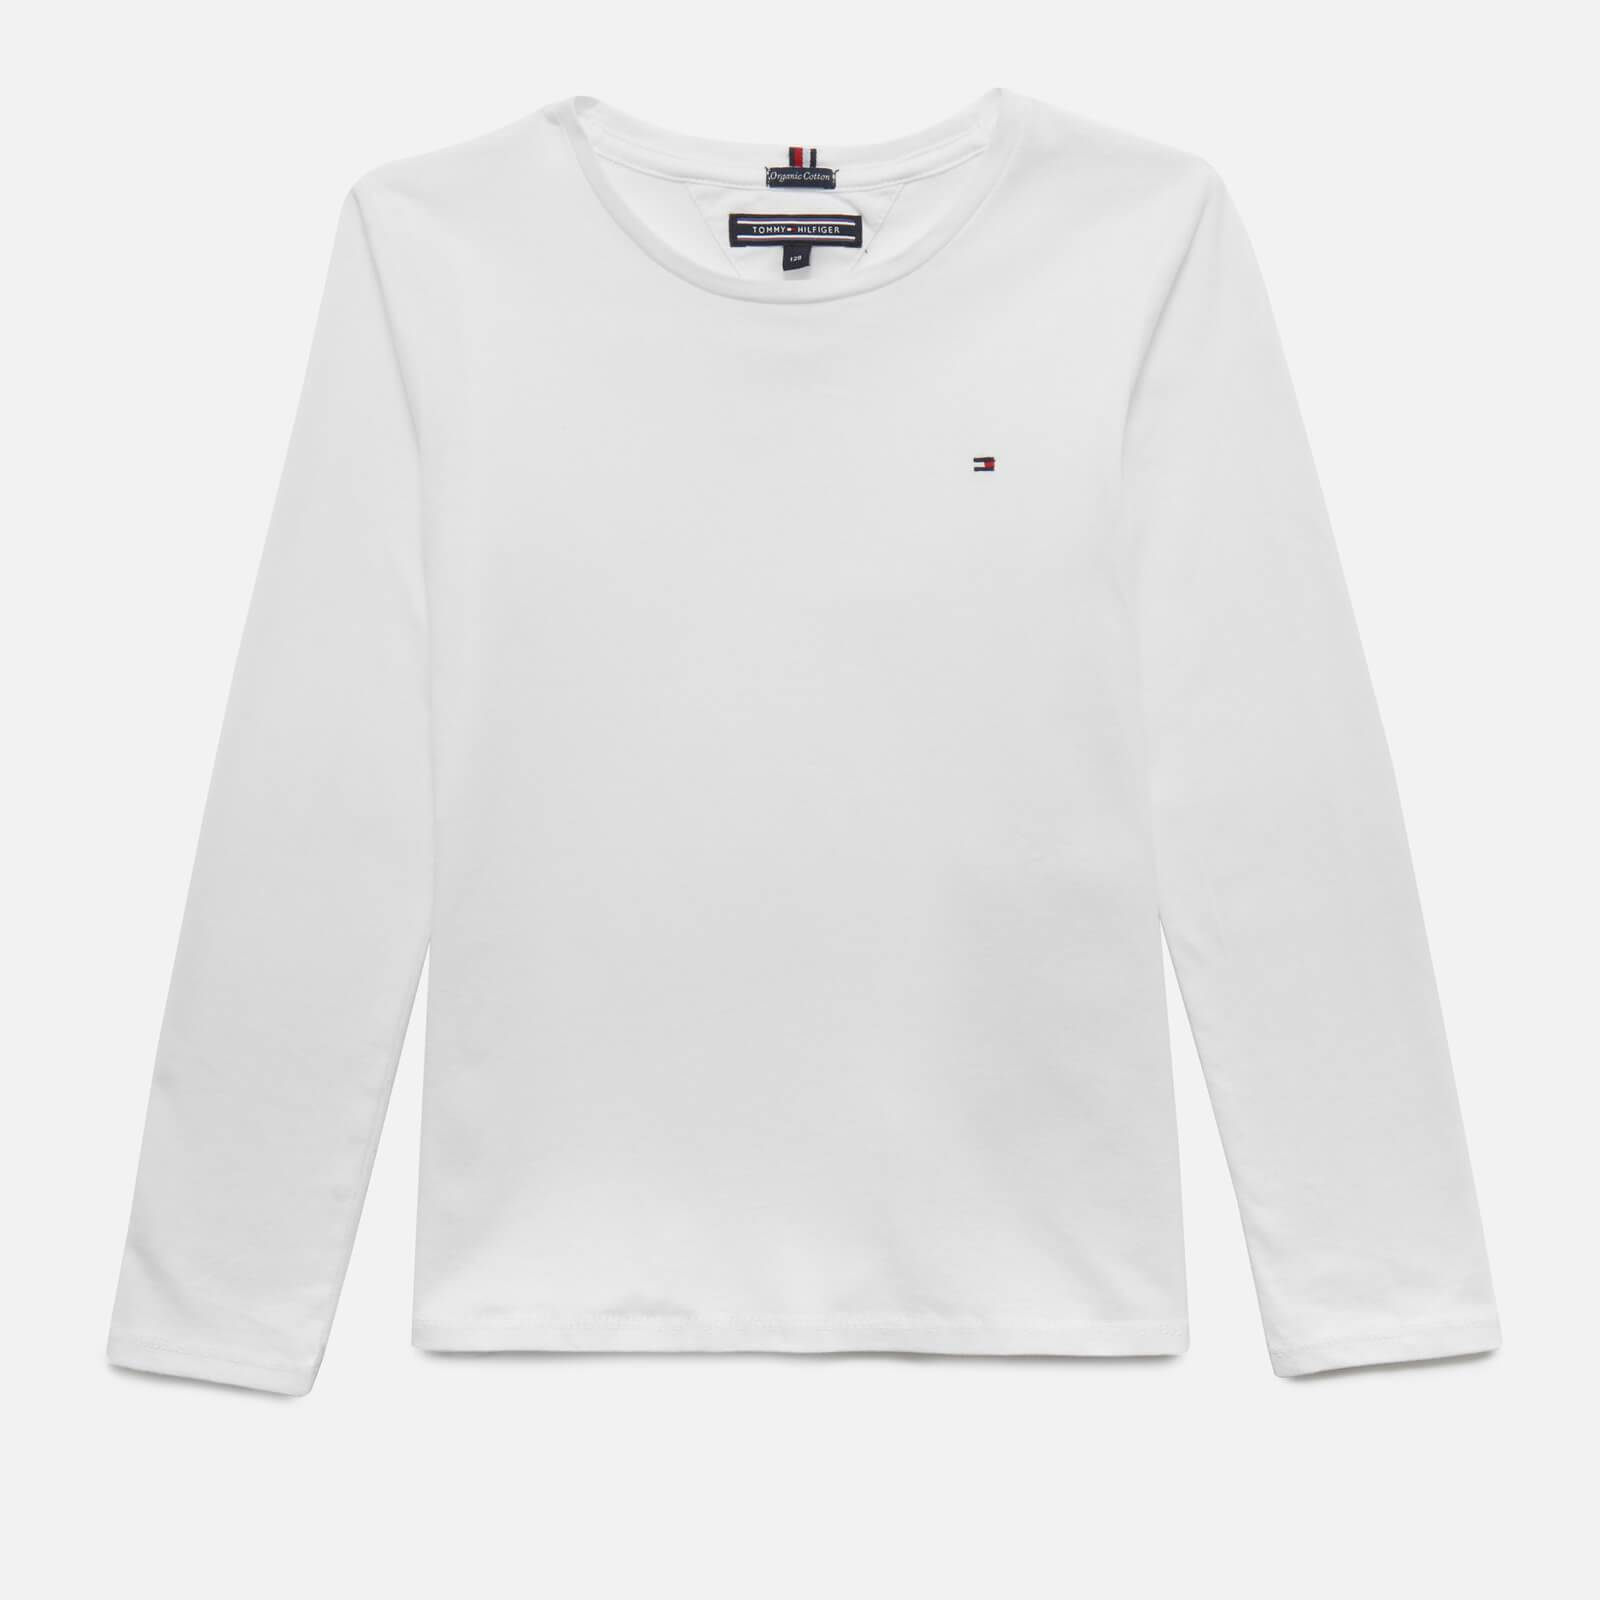 Tommy Kids Girls' Long Sleeve T-Shirt - Bright White - 7 Years